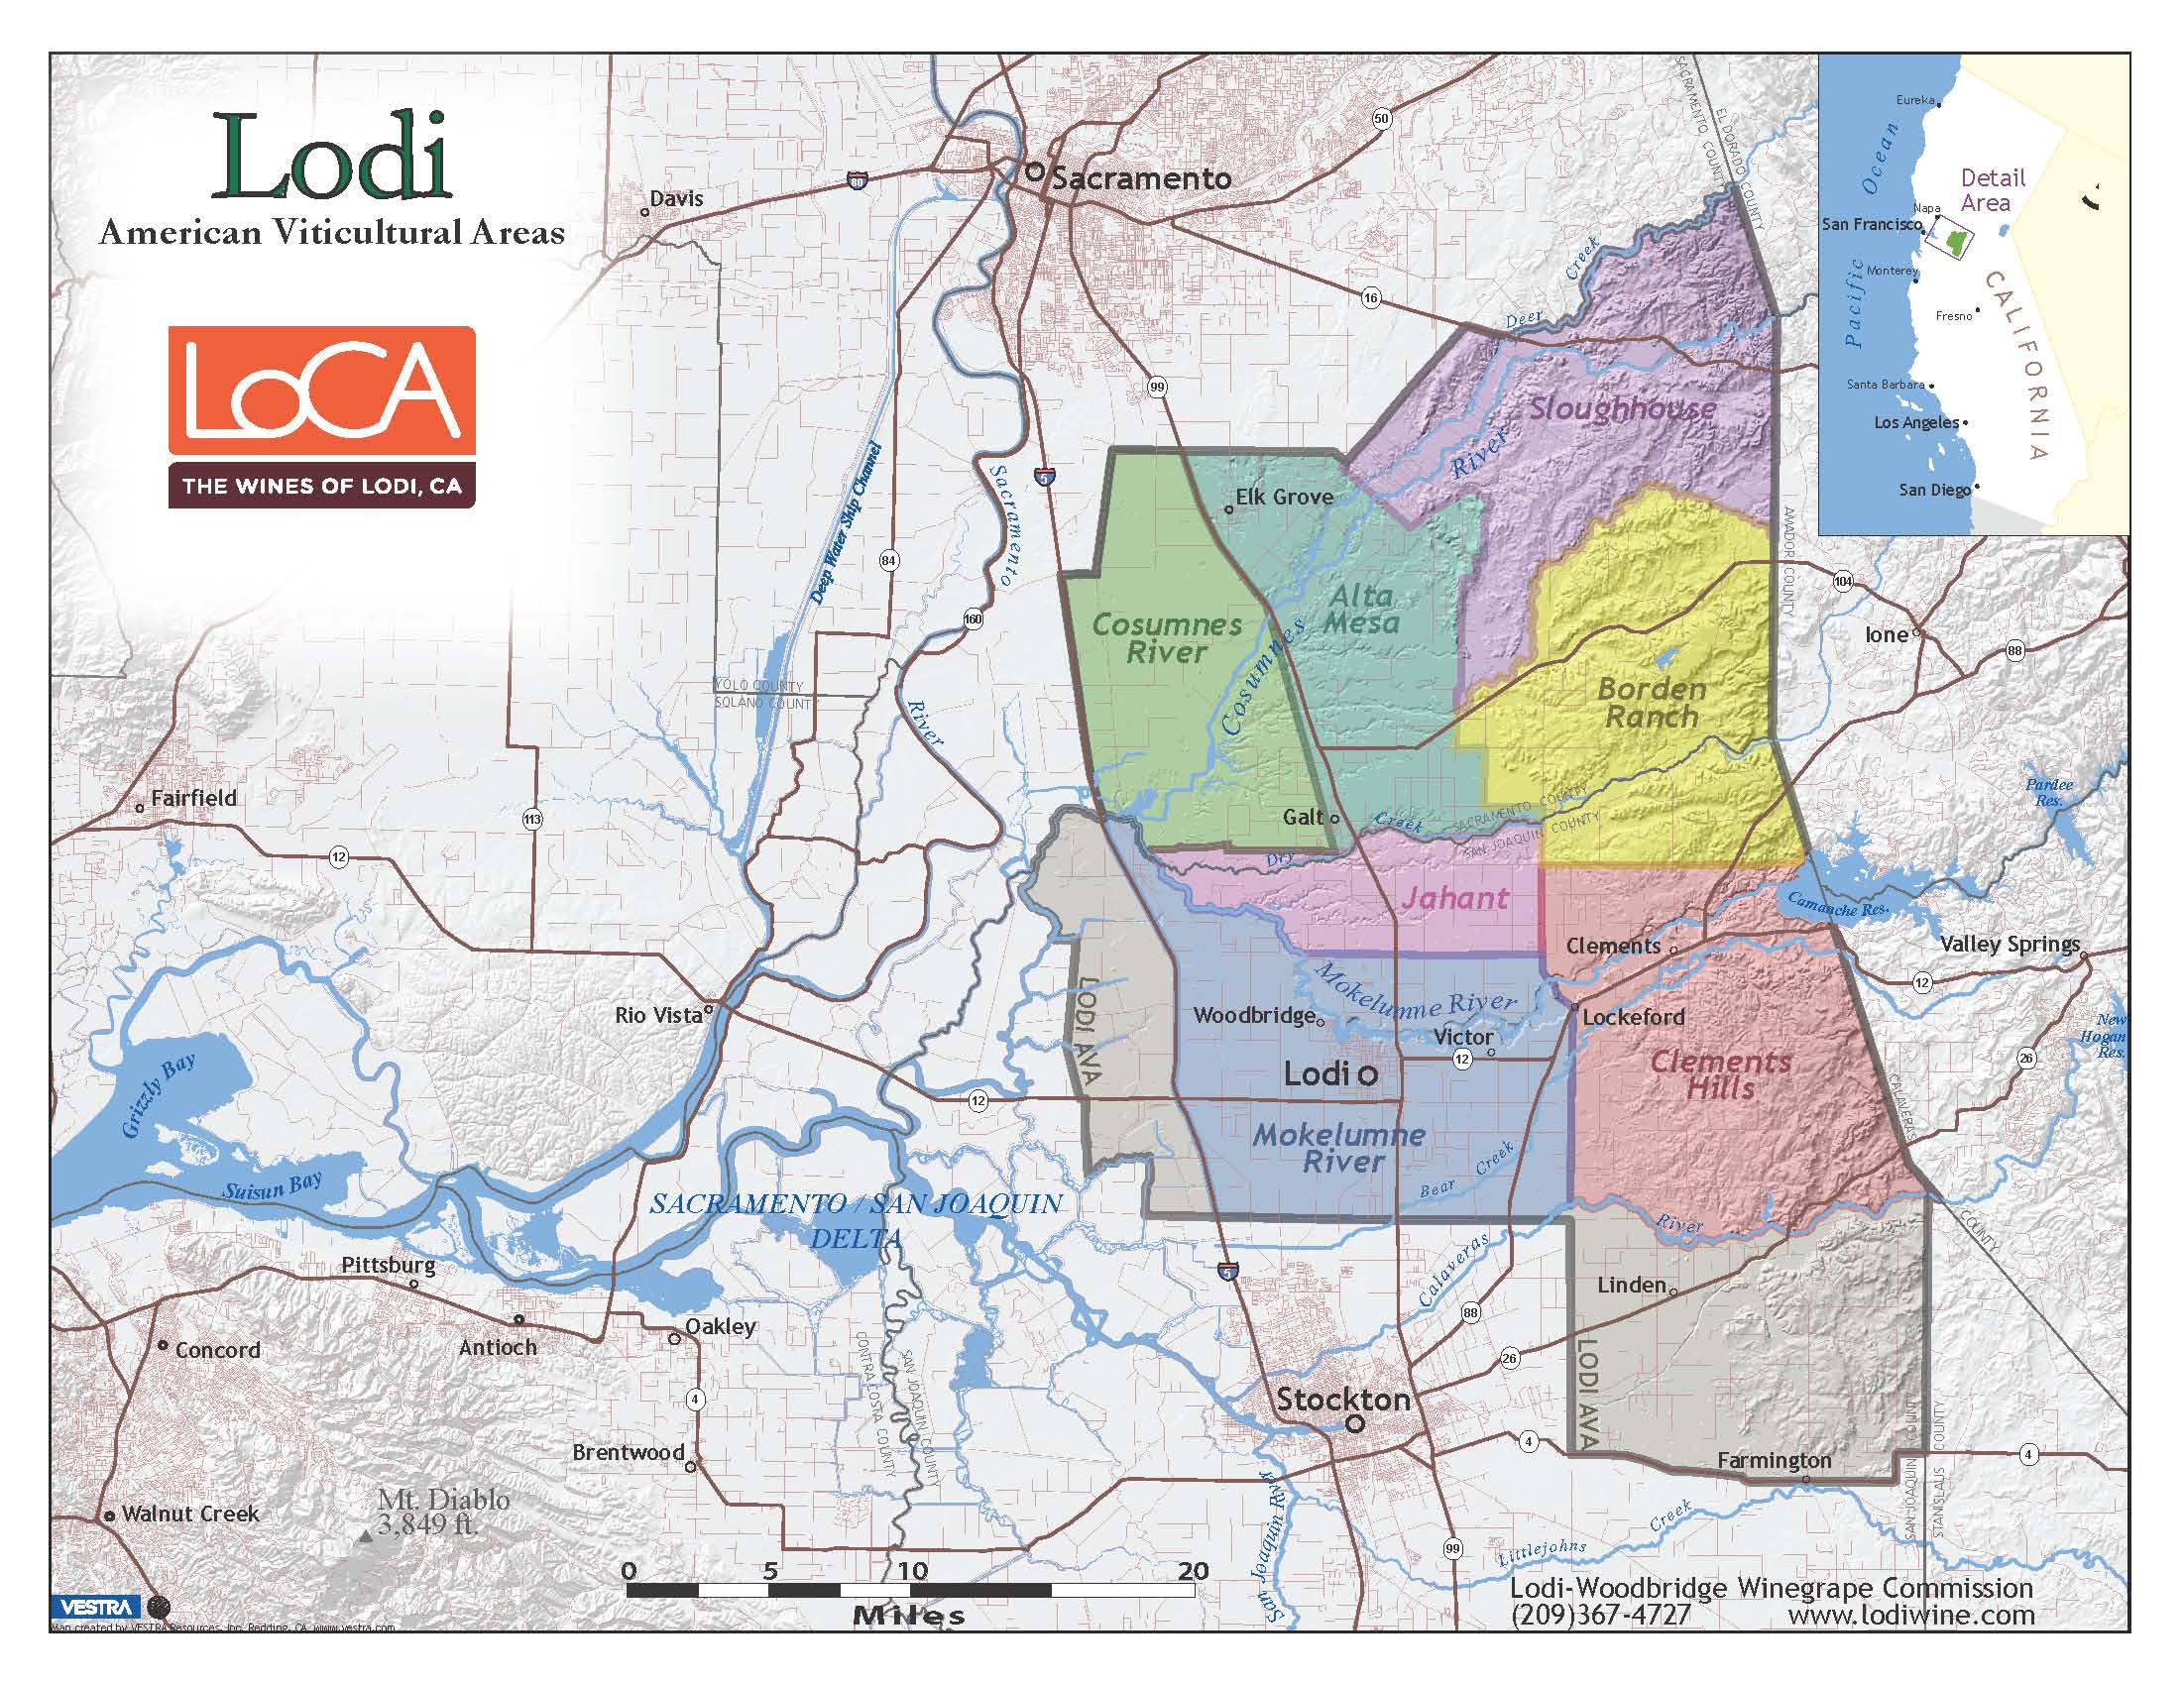 Map of Lodi Wine Region